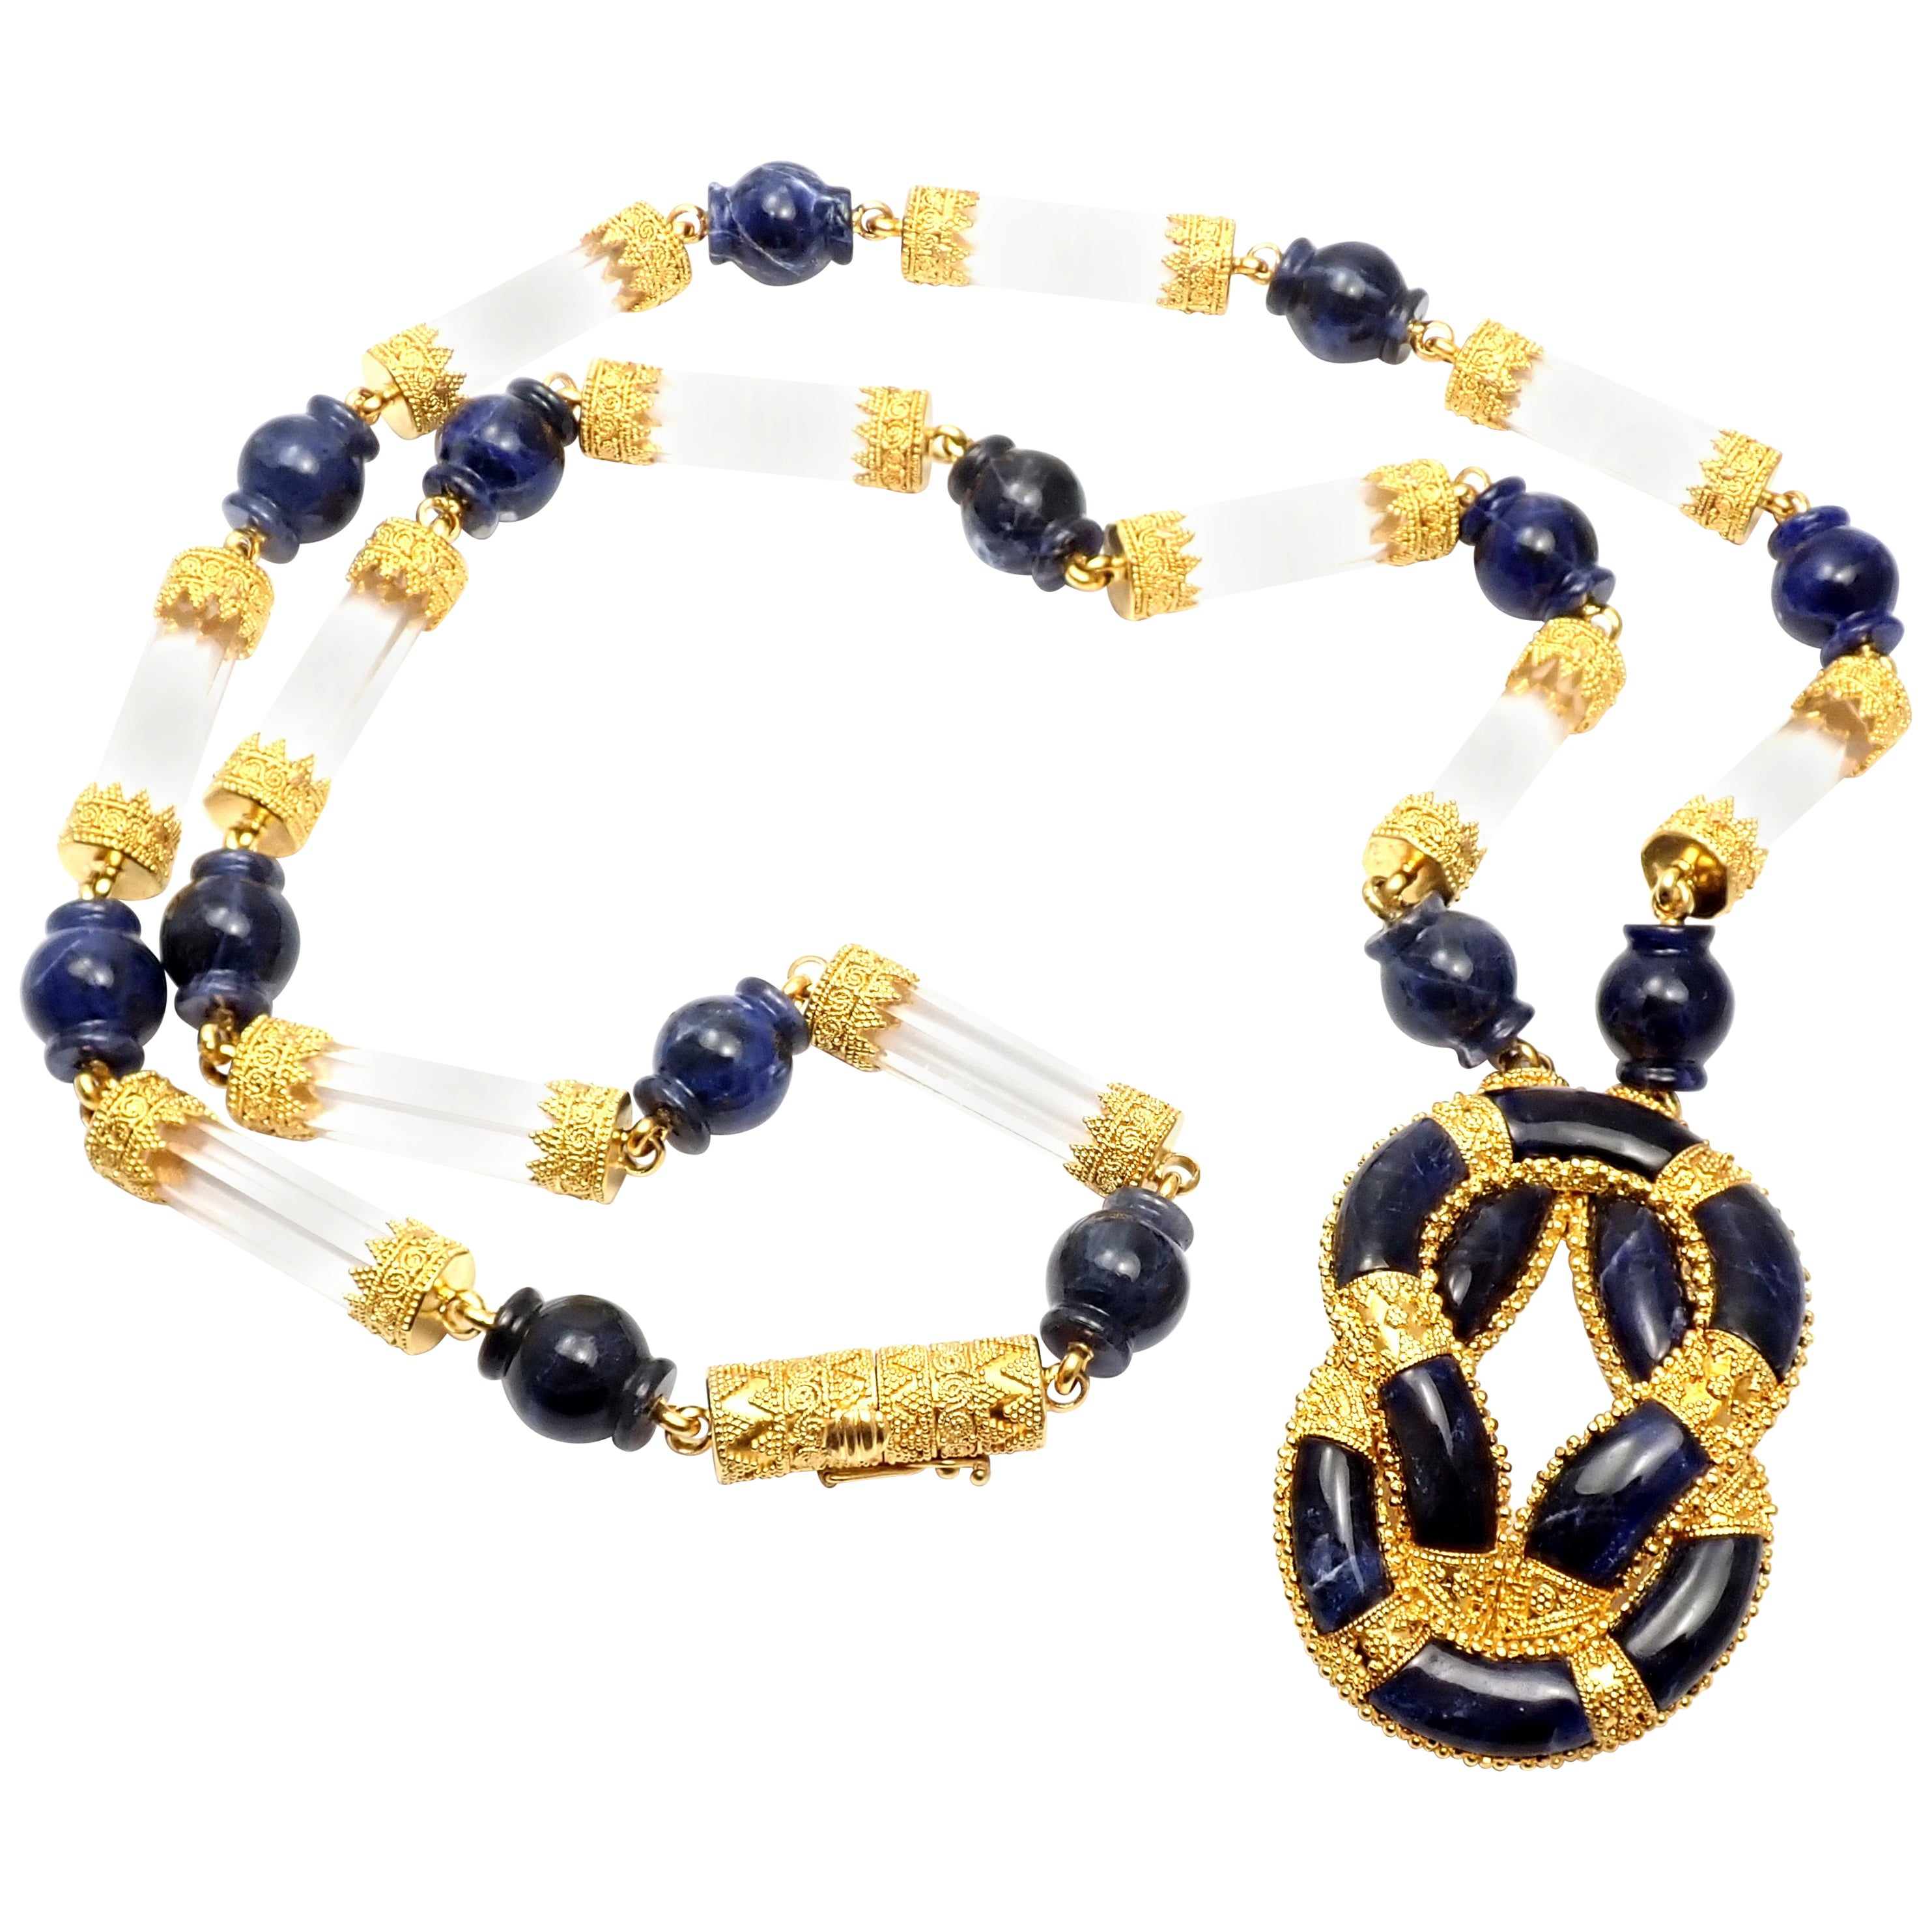 Ilias Lalaounis Sodalite Rock Crystal Hercules Knot Yellow Gold Necklace